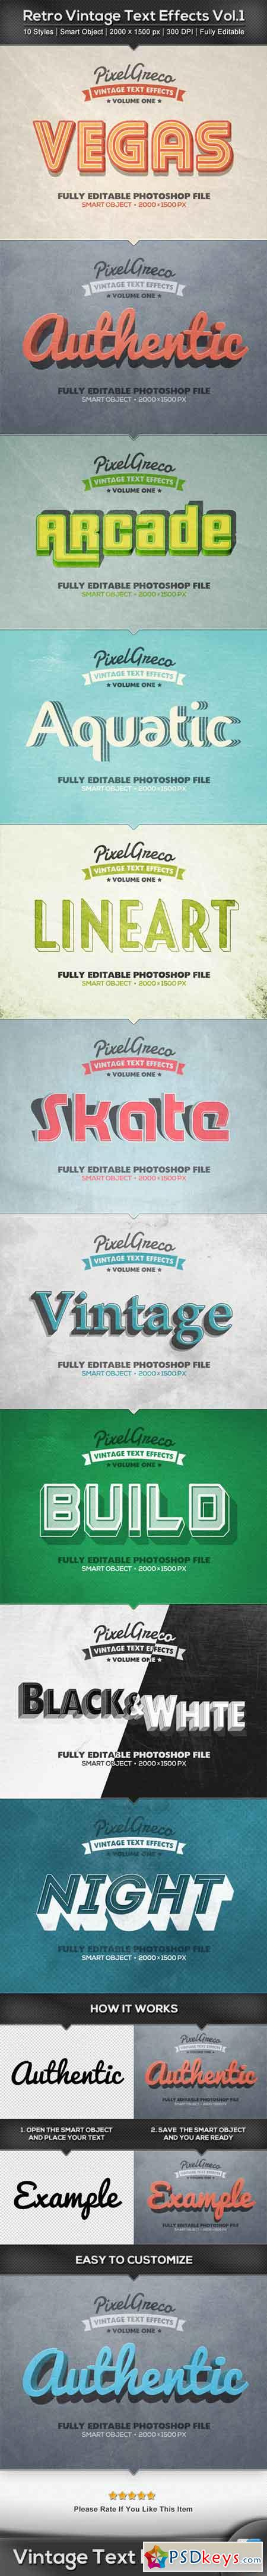 Retro Vintage Text Effects Vol.1 22497877